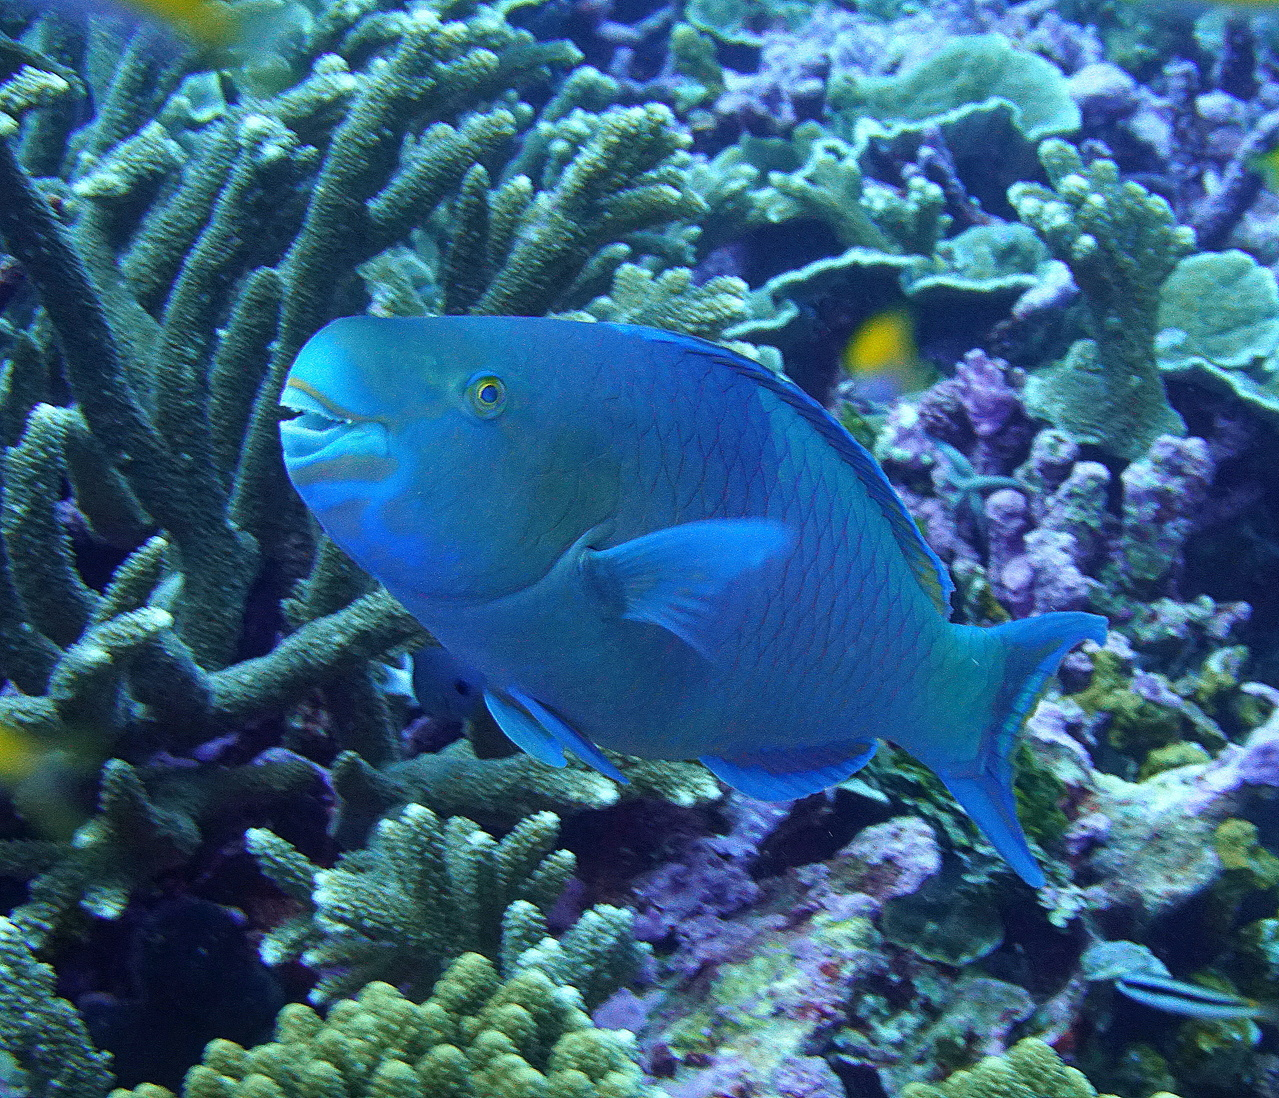 Parrotfish among corals.